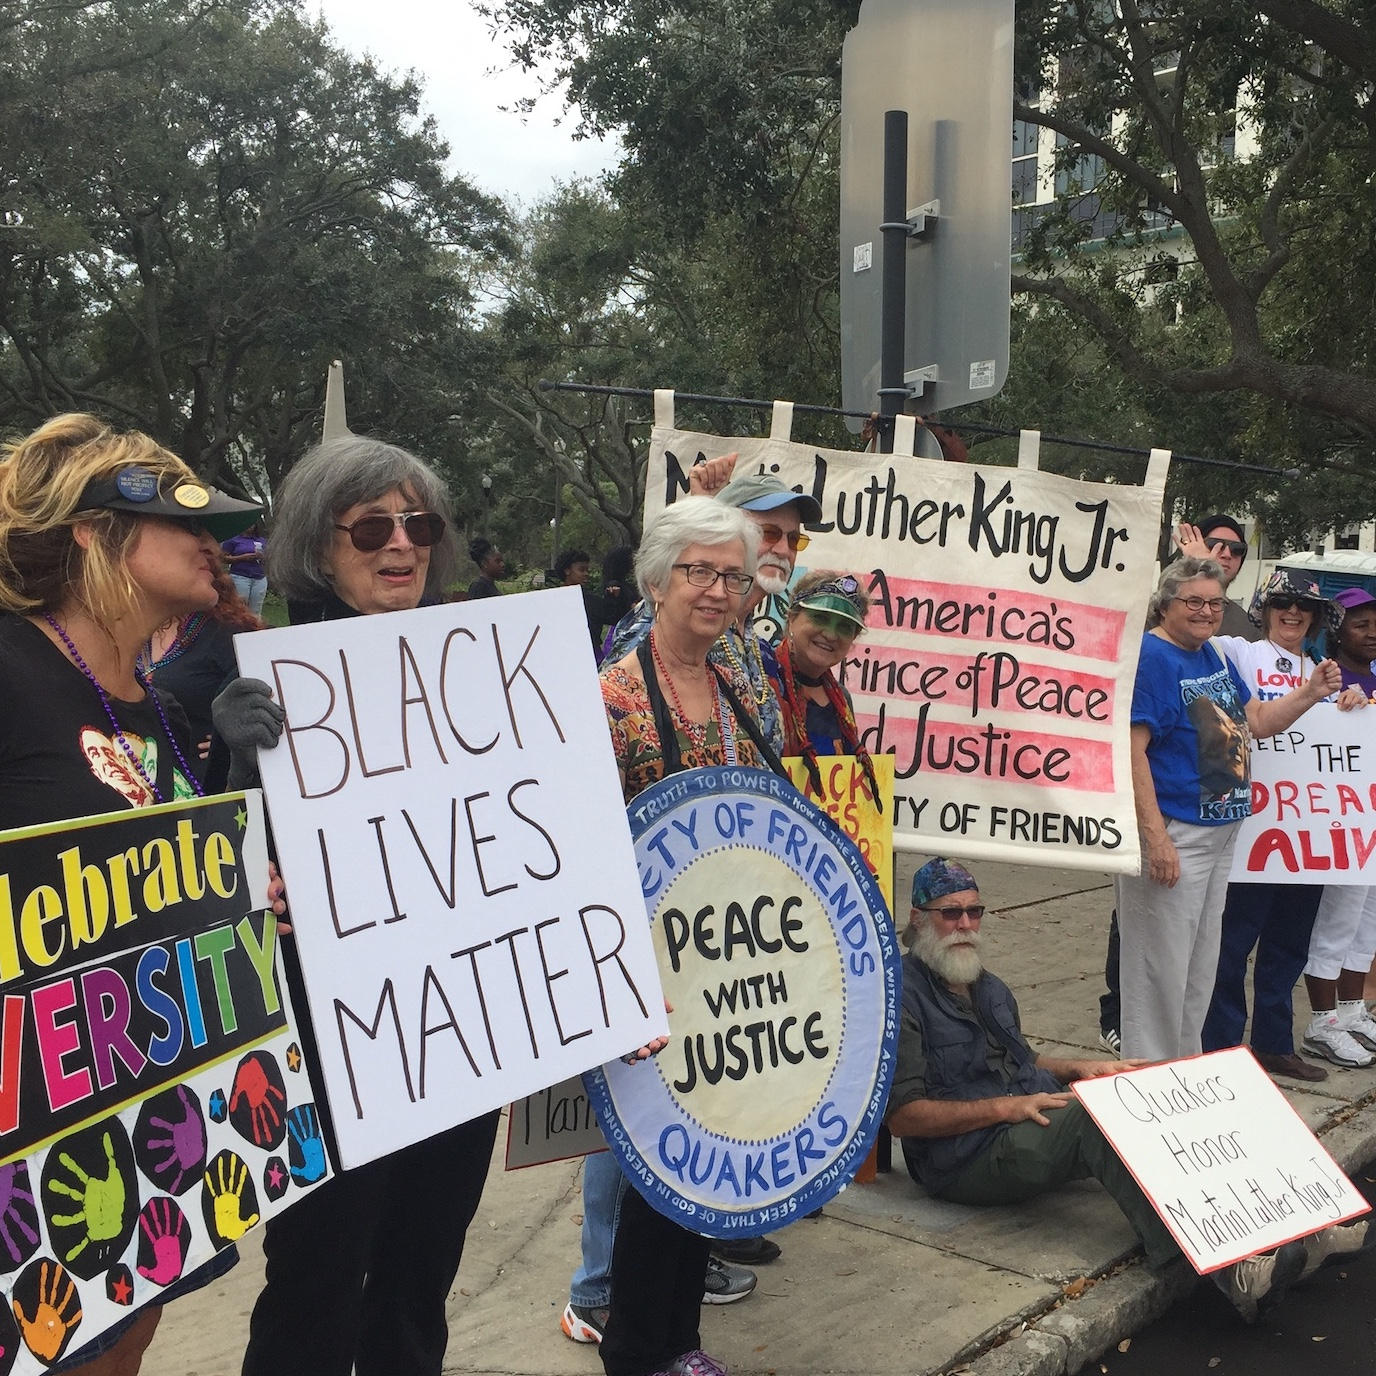 St. Petersburg Meeting: Statement On Black Lives Matter